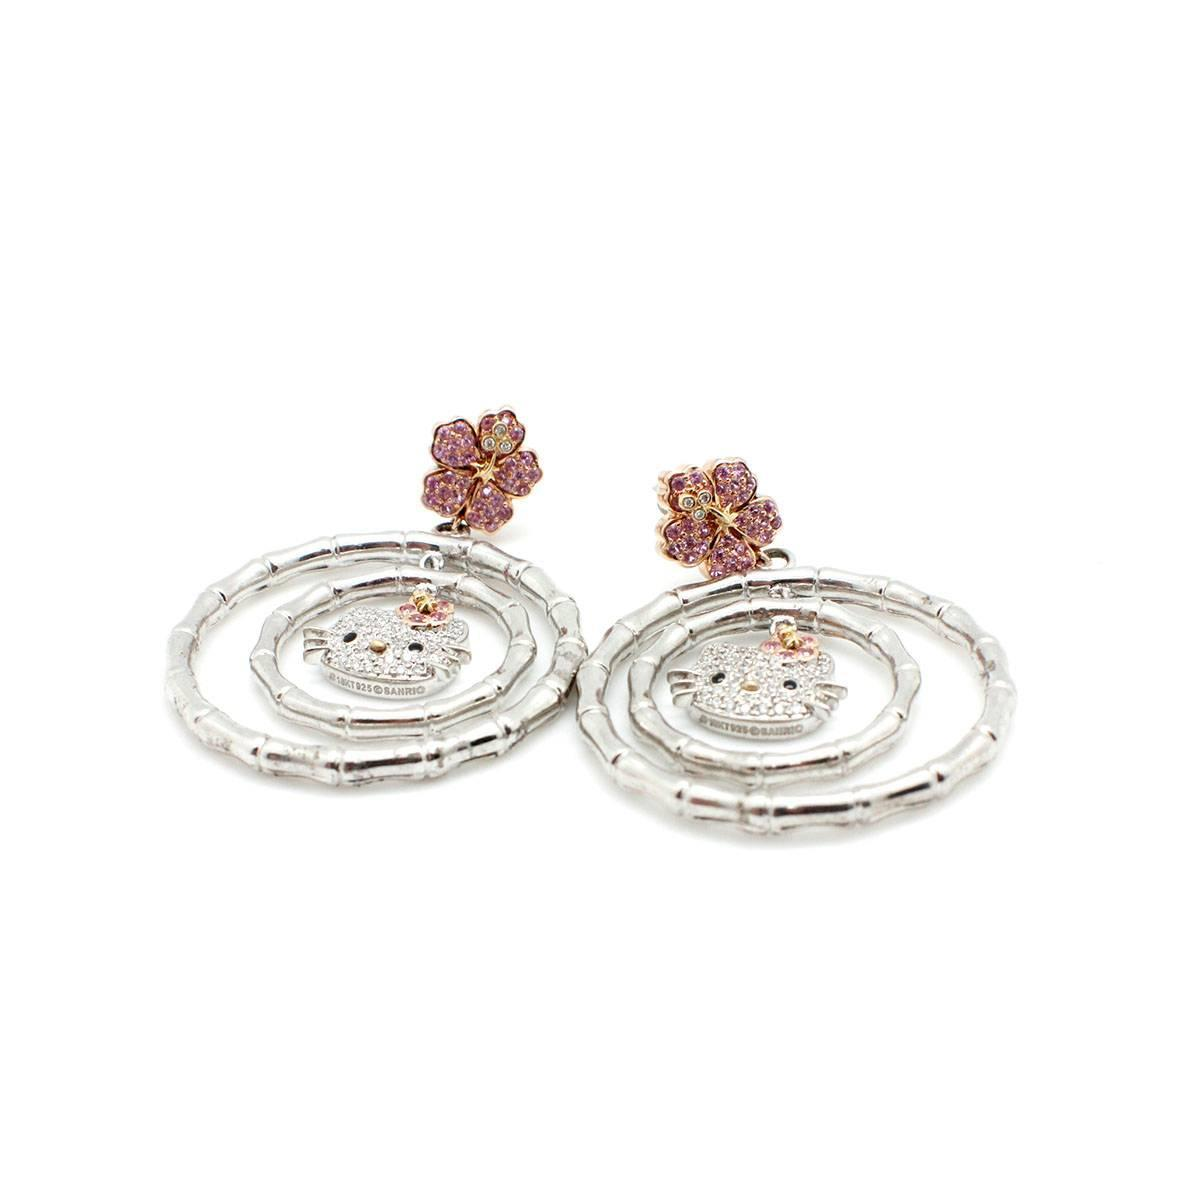 Kimora Lee Simmons Pink Sapphire Diamond Gold u0026quot;Hello Kittyu0026quot; Earrings For Sale at 1stdibs